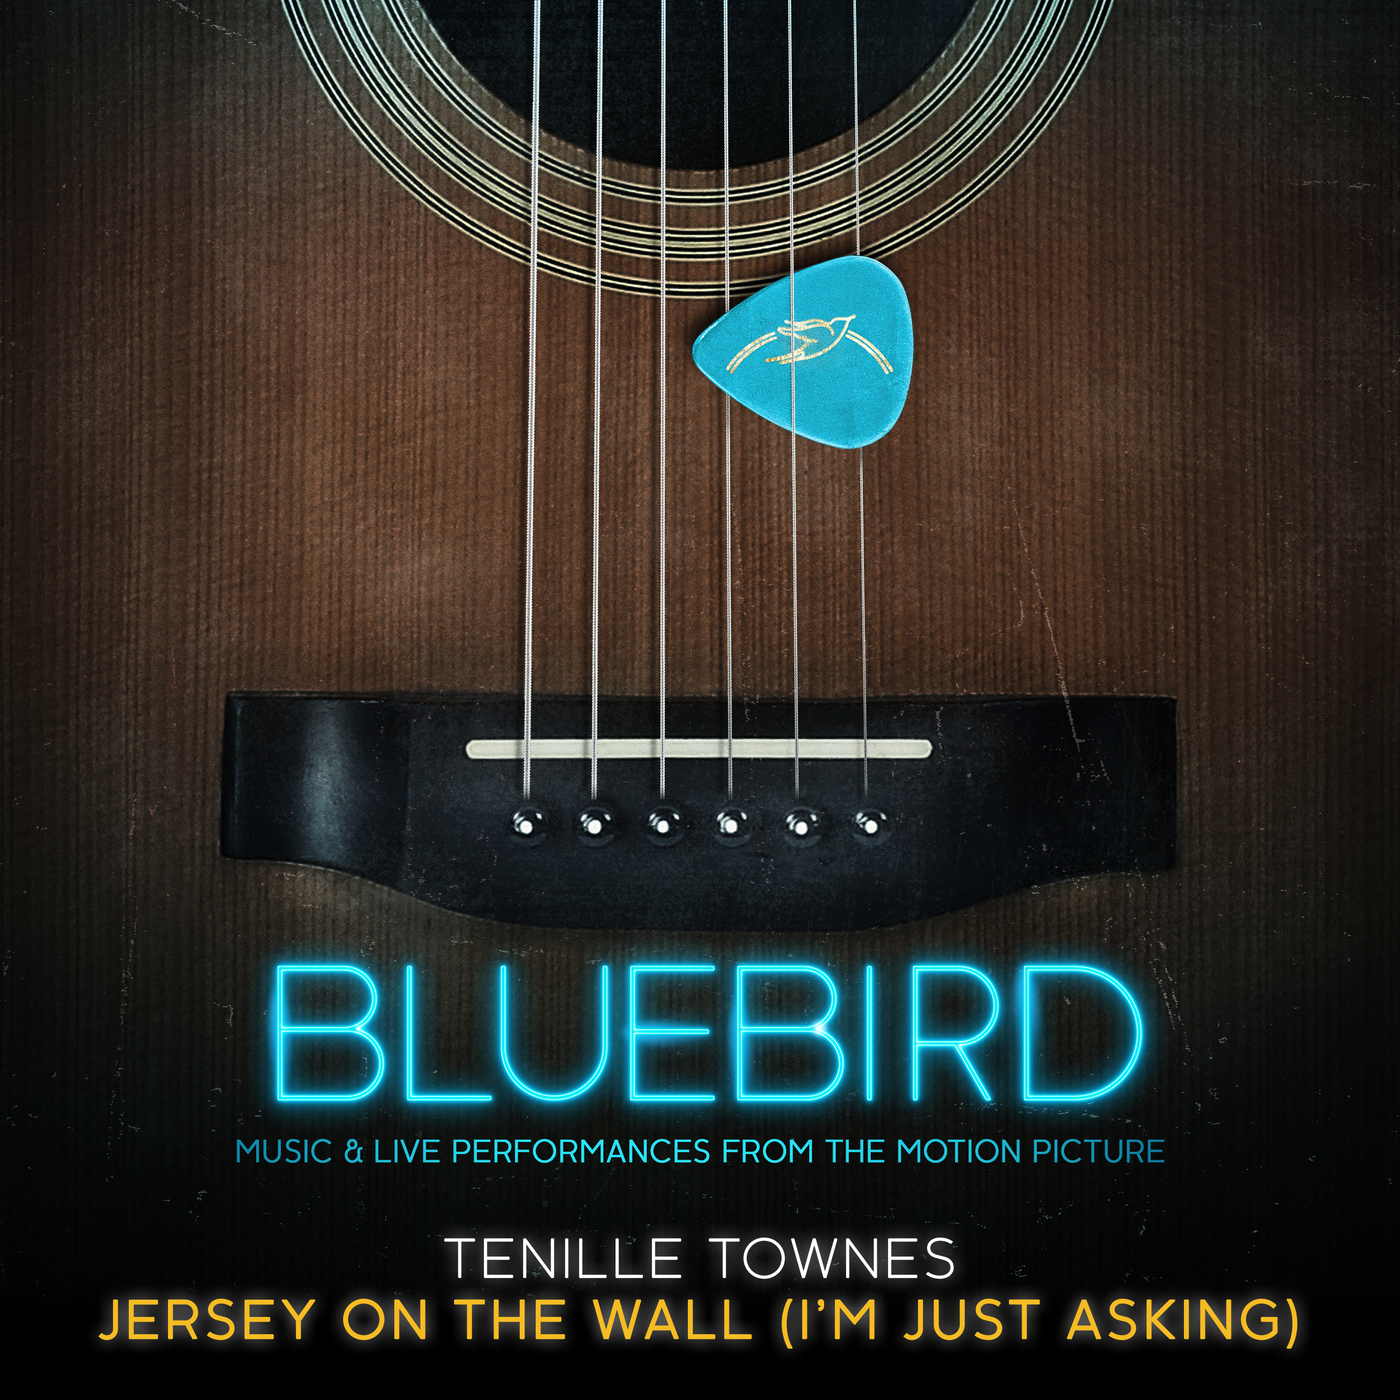 Jersey on the Wall (I'm Just Asking [Live from the Bluebird Café ]) - Tenille Townes